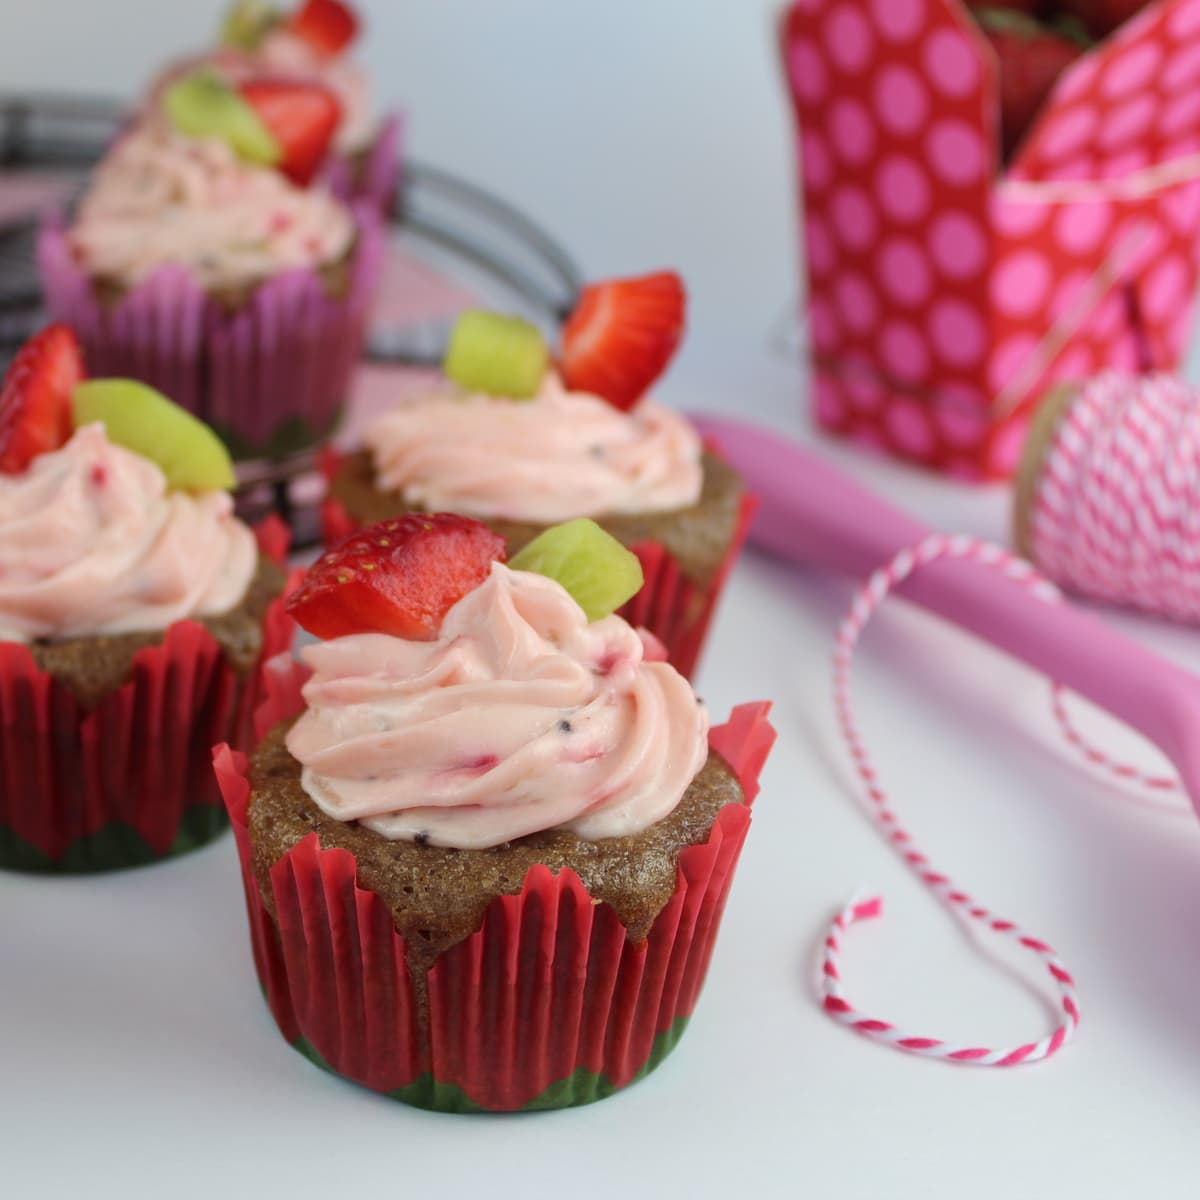 Strawberry Kiwi Cupcakes with Strawberry Kiwi Creamy Frosting